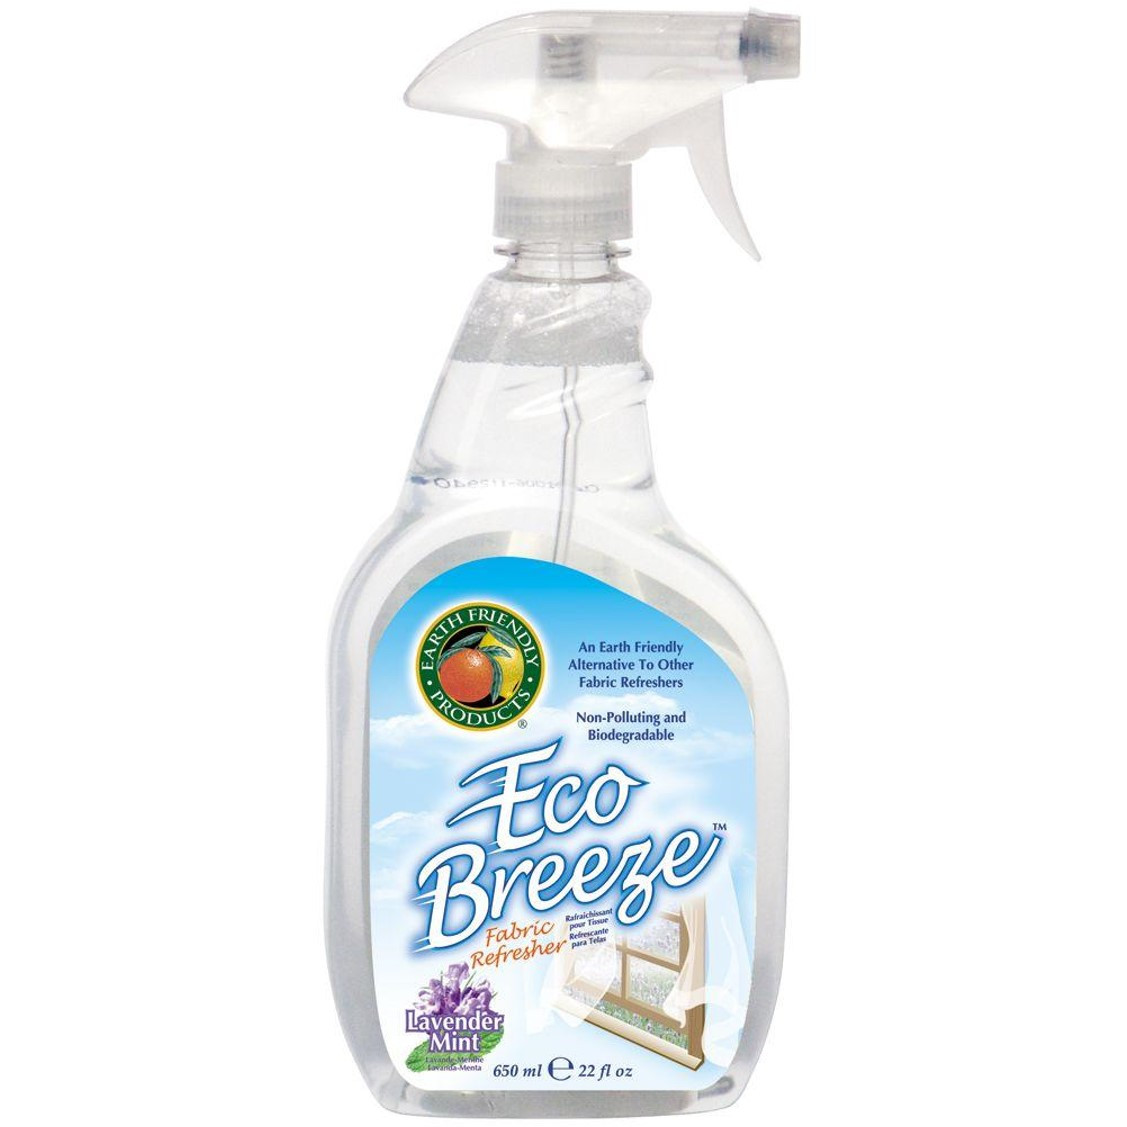 Earth Friendly Eco Breeze Fabric Refresher Lavender Mint, 650ml